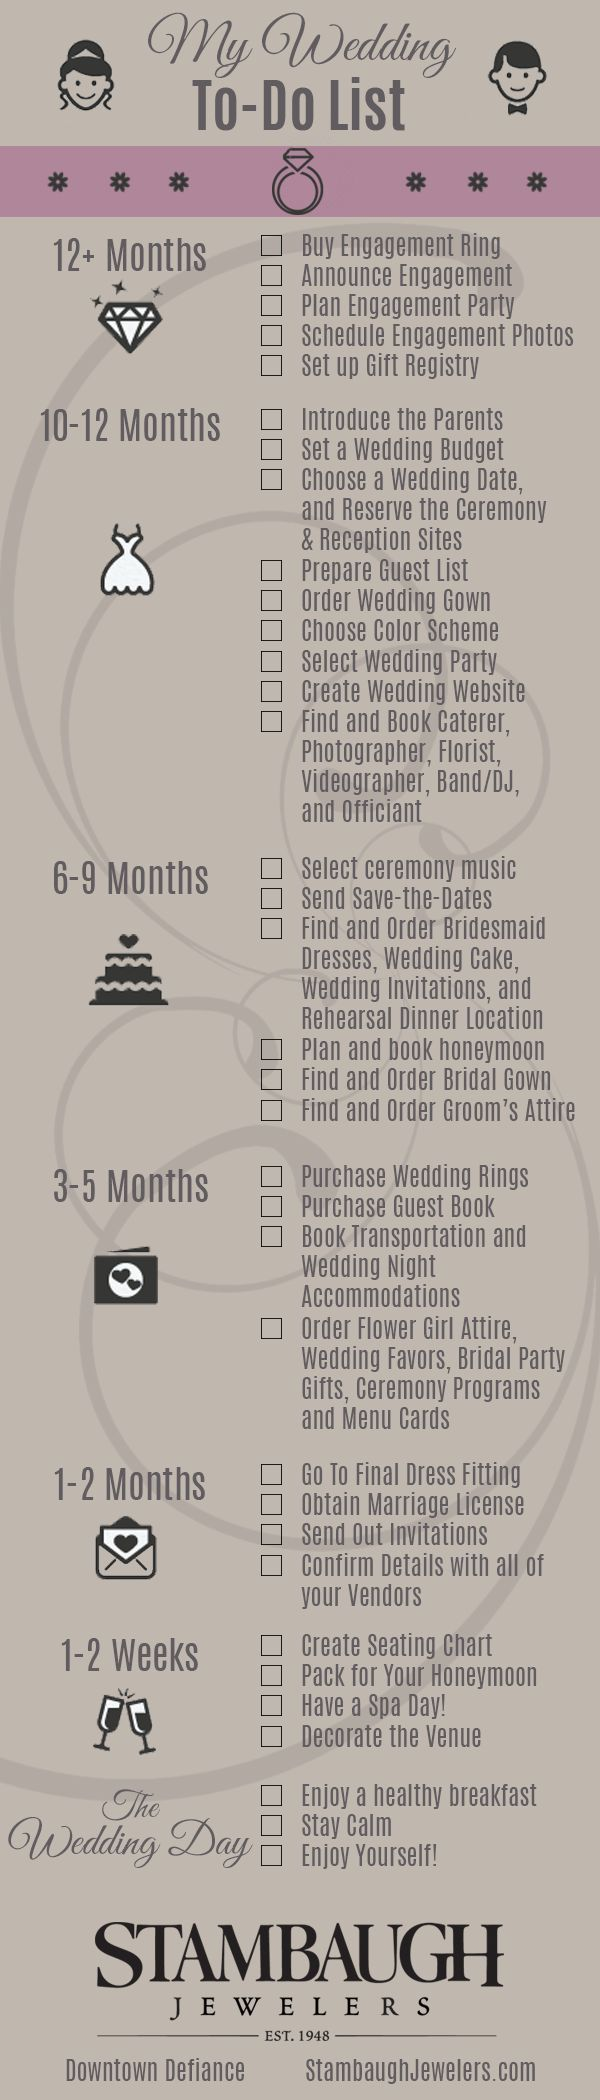 A handy checklist for newly engaged brides. Enjoy!